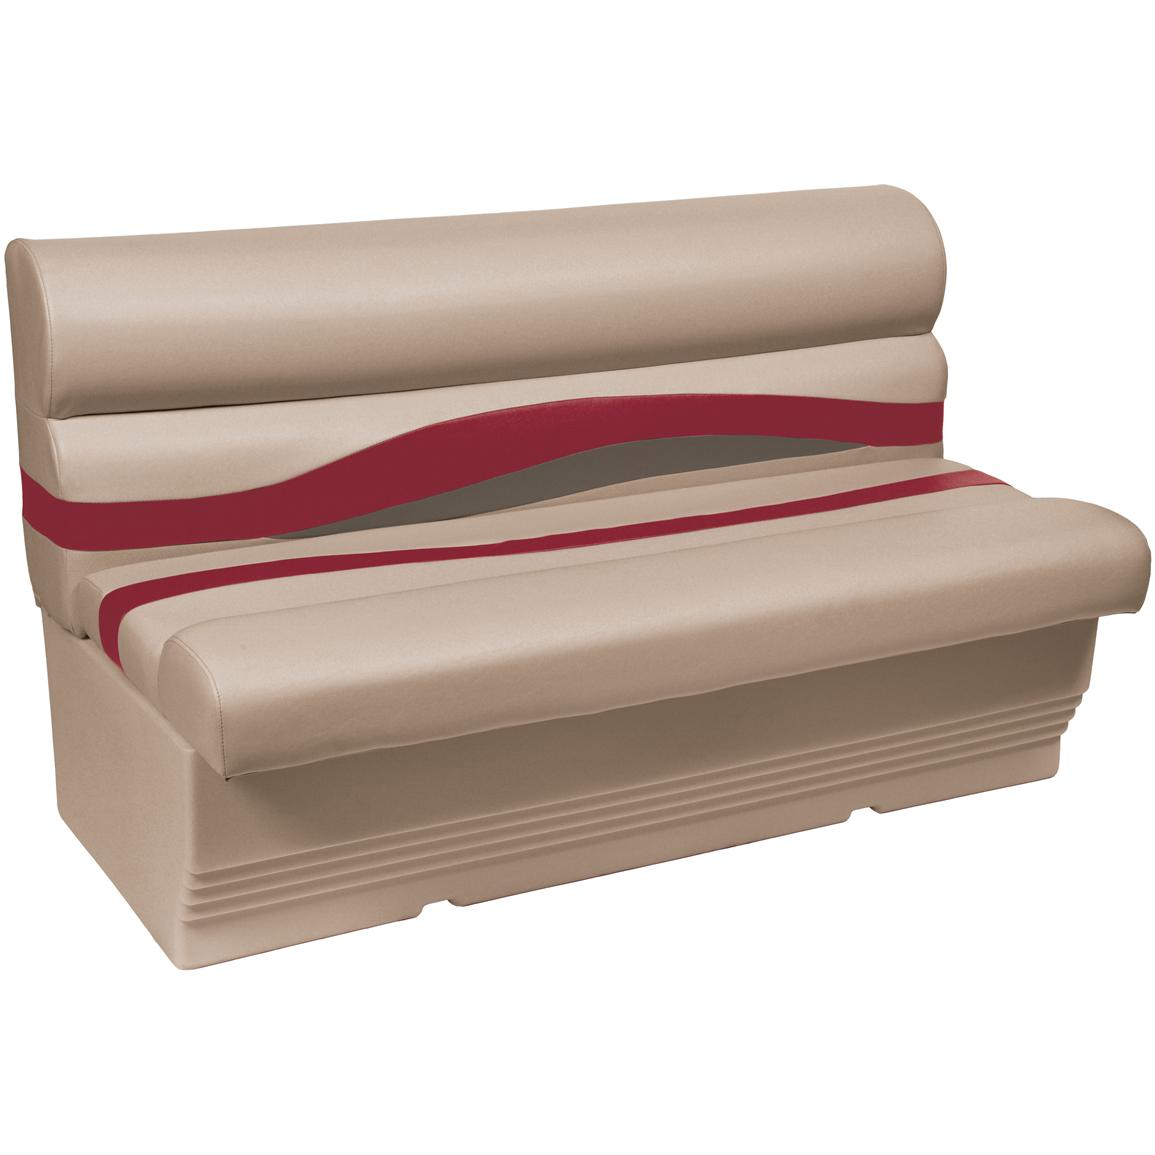 Wise® Premier 1100 Series 50 inch Pontoon Bench Seat, Color E